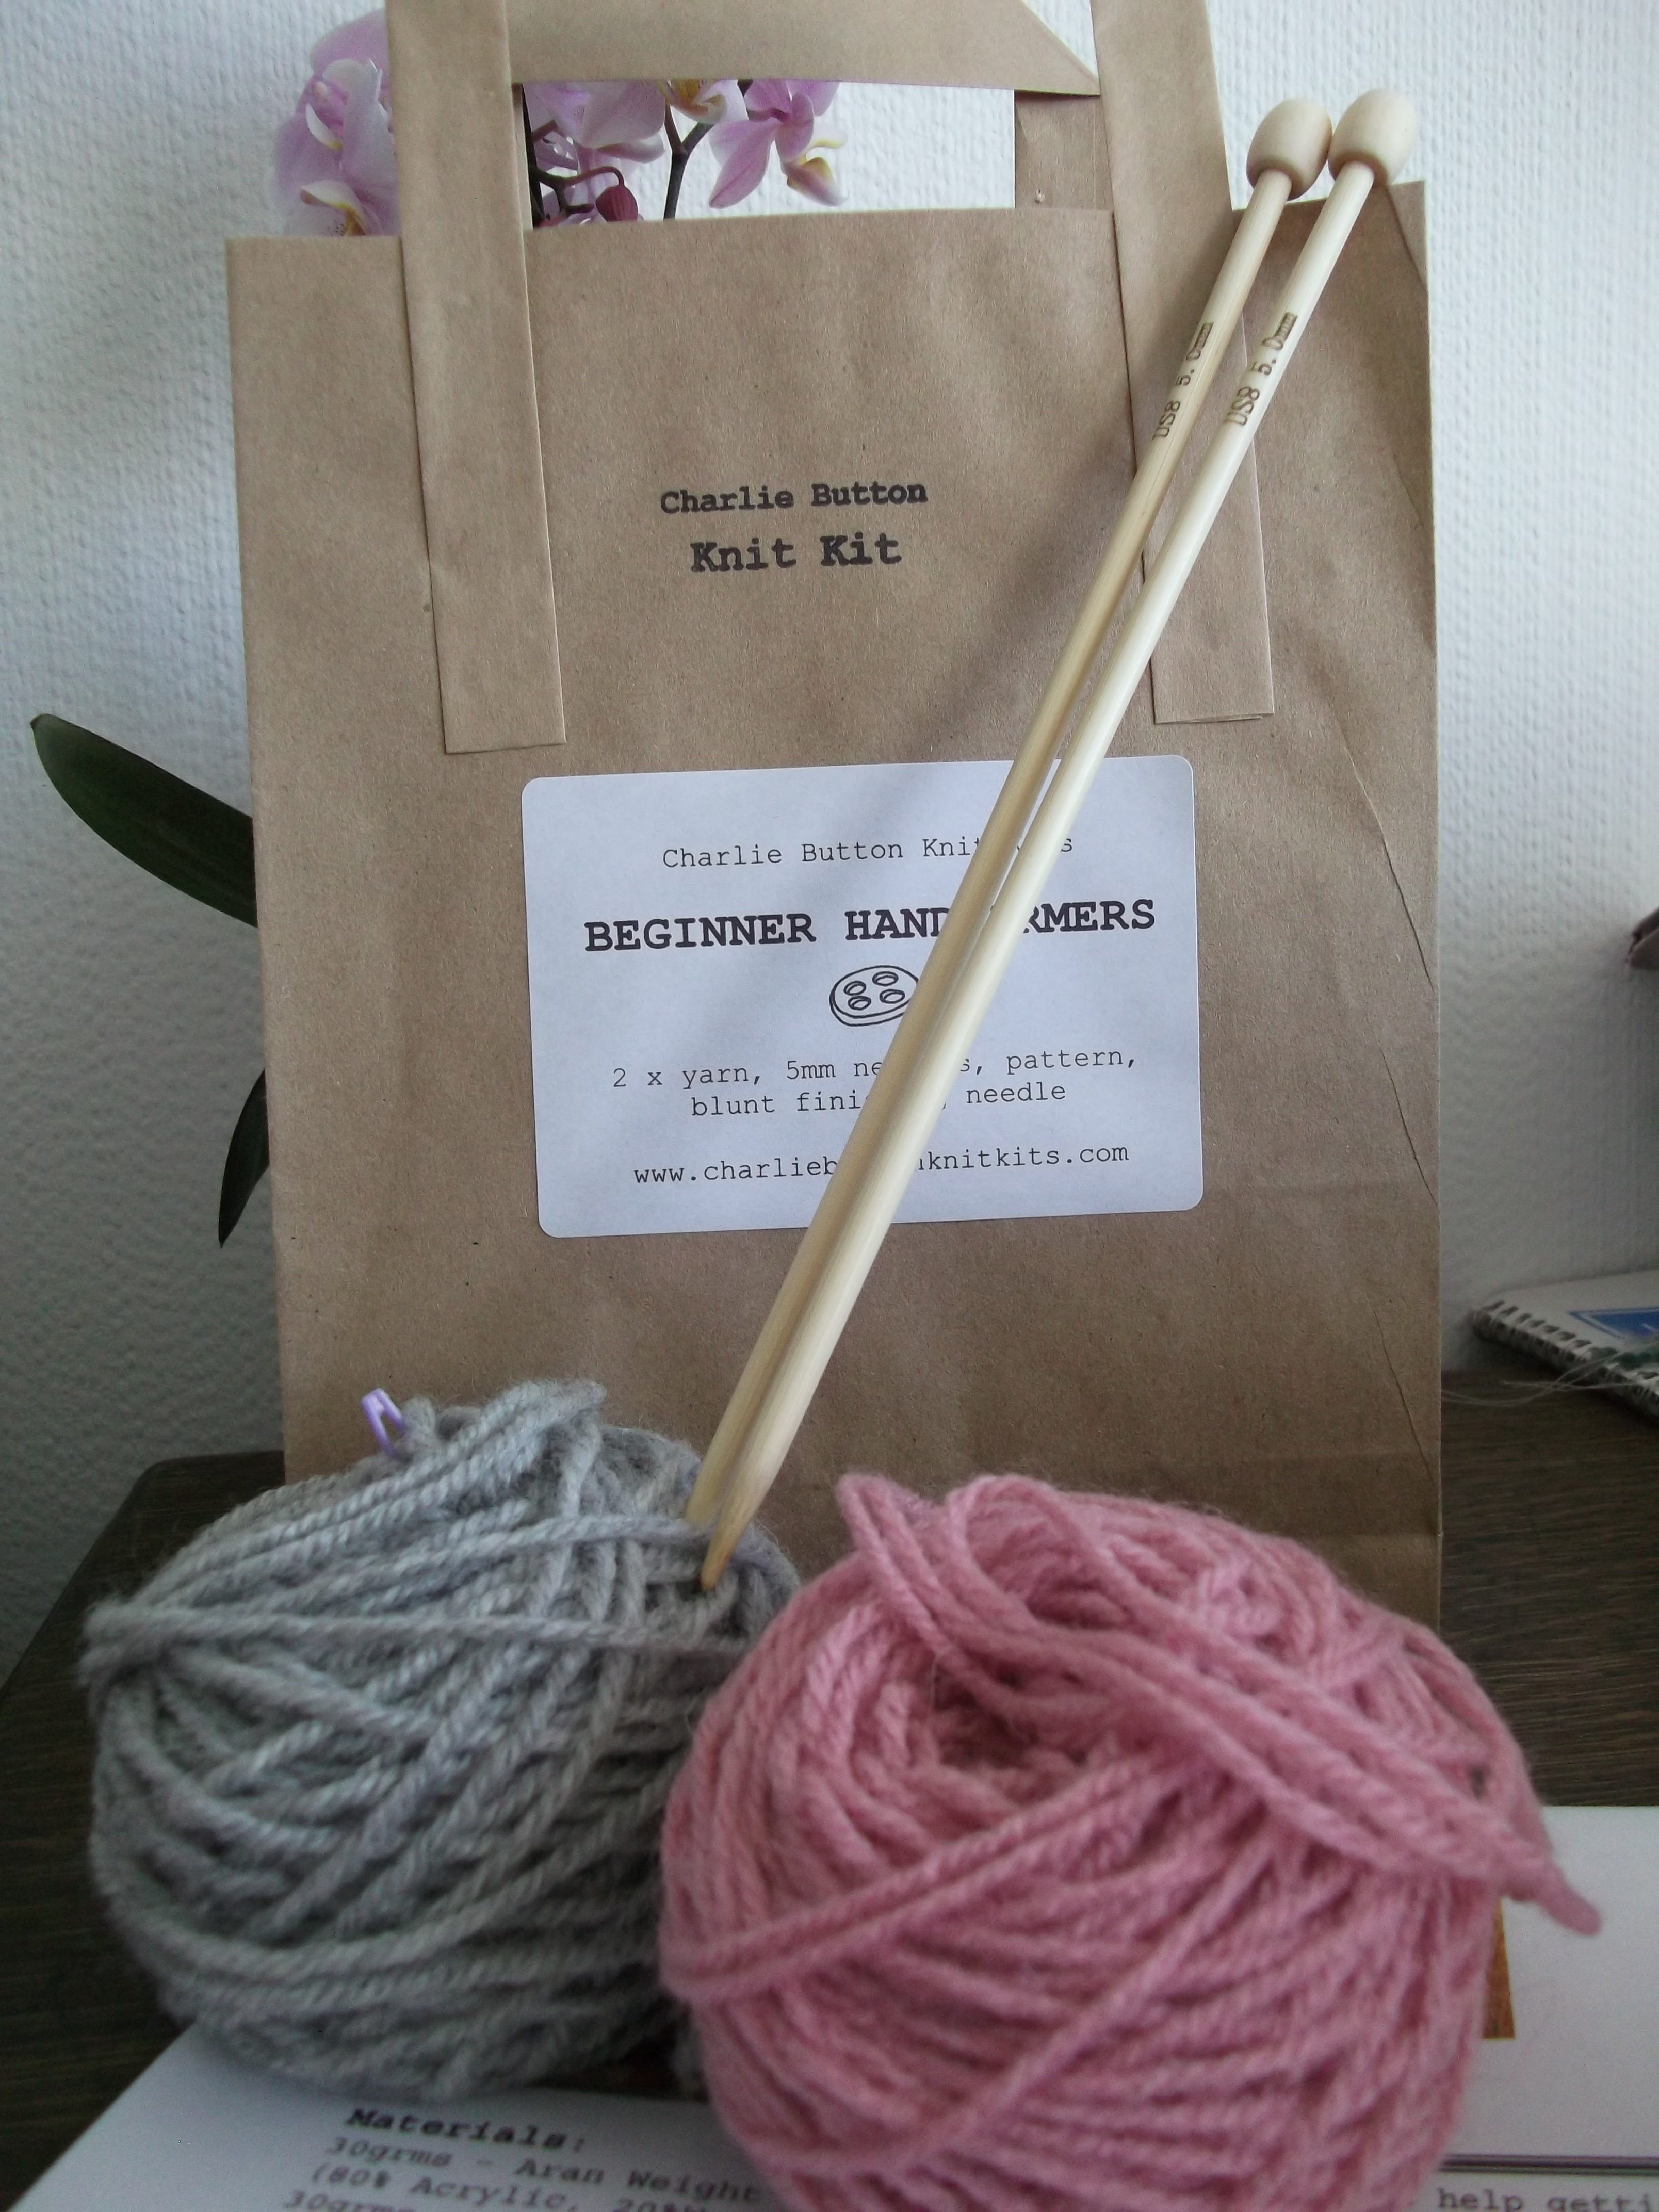 Knitting Kits For Beginners Uk : Beginner knitting kit hand warmer pink and grey